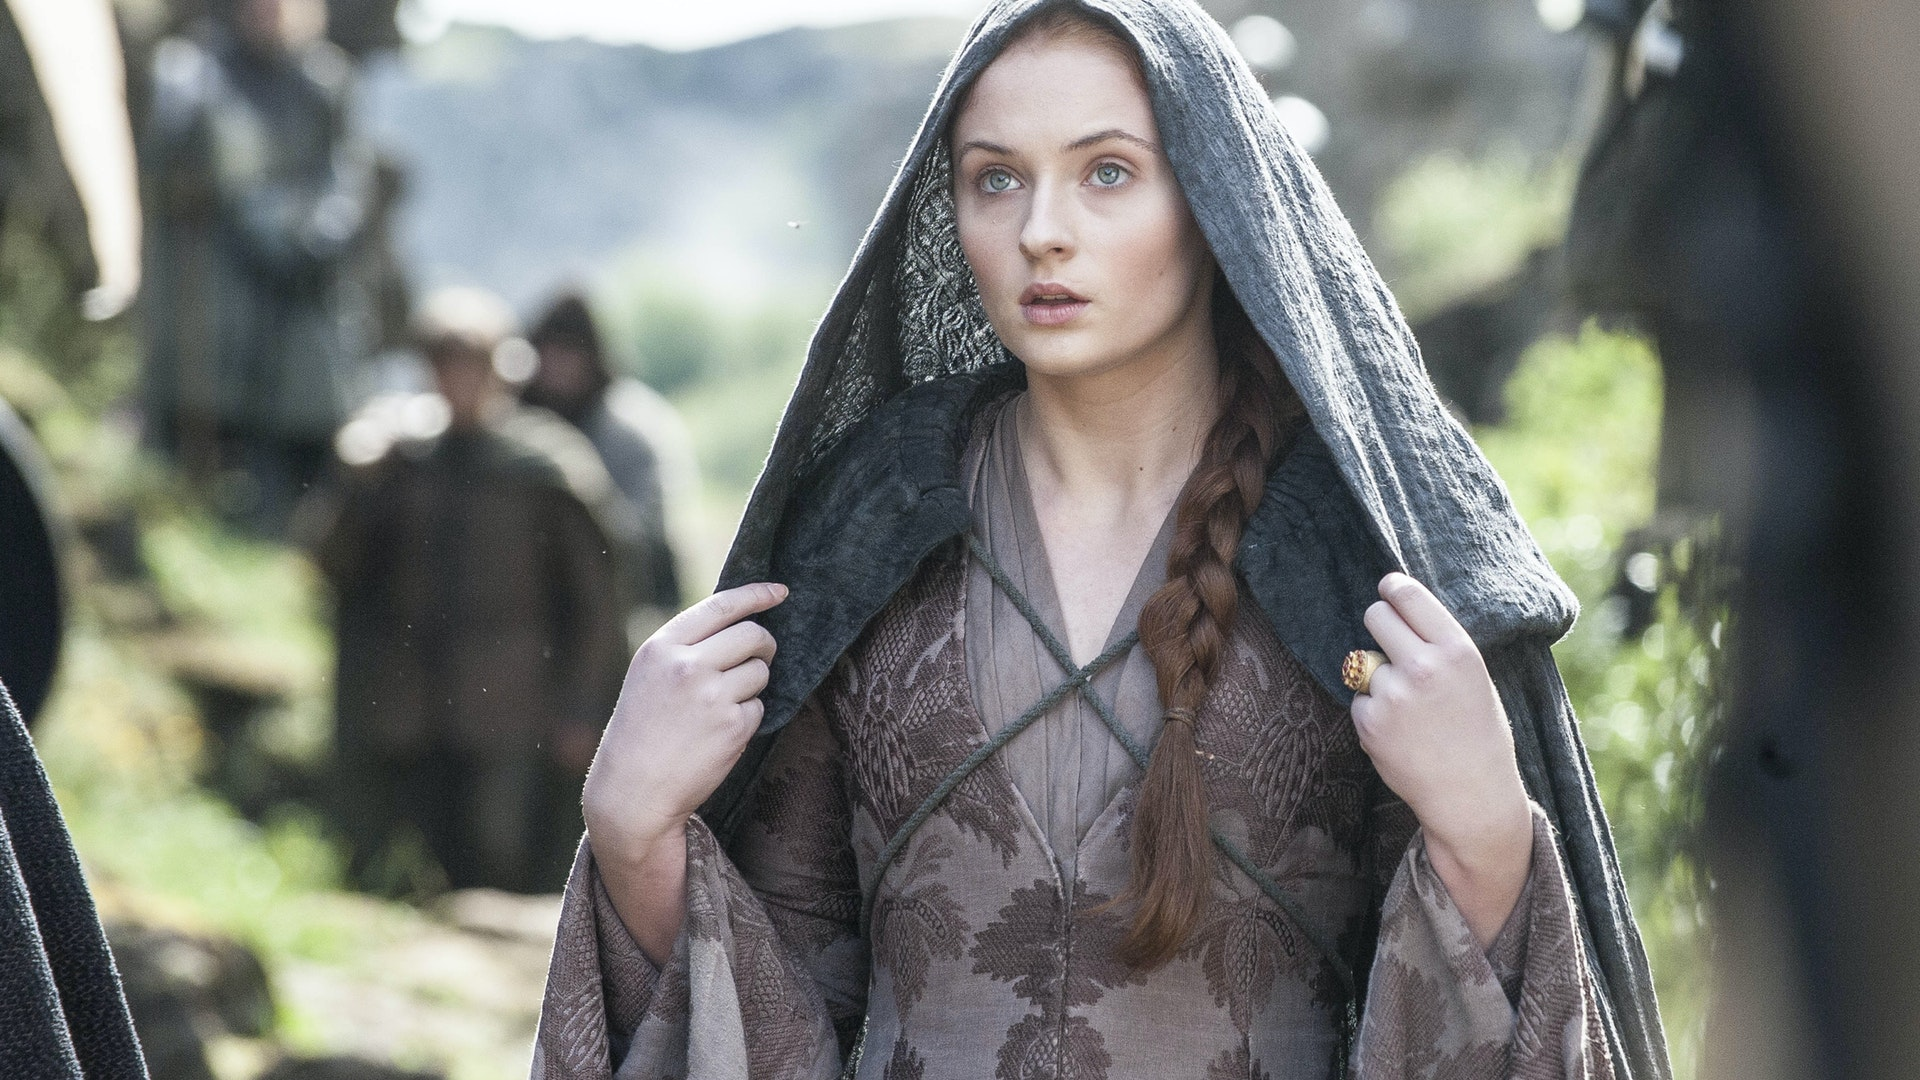 season-4-episode-5-first-of-his-name-game-of-thrones-37070101-4256-2832